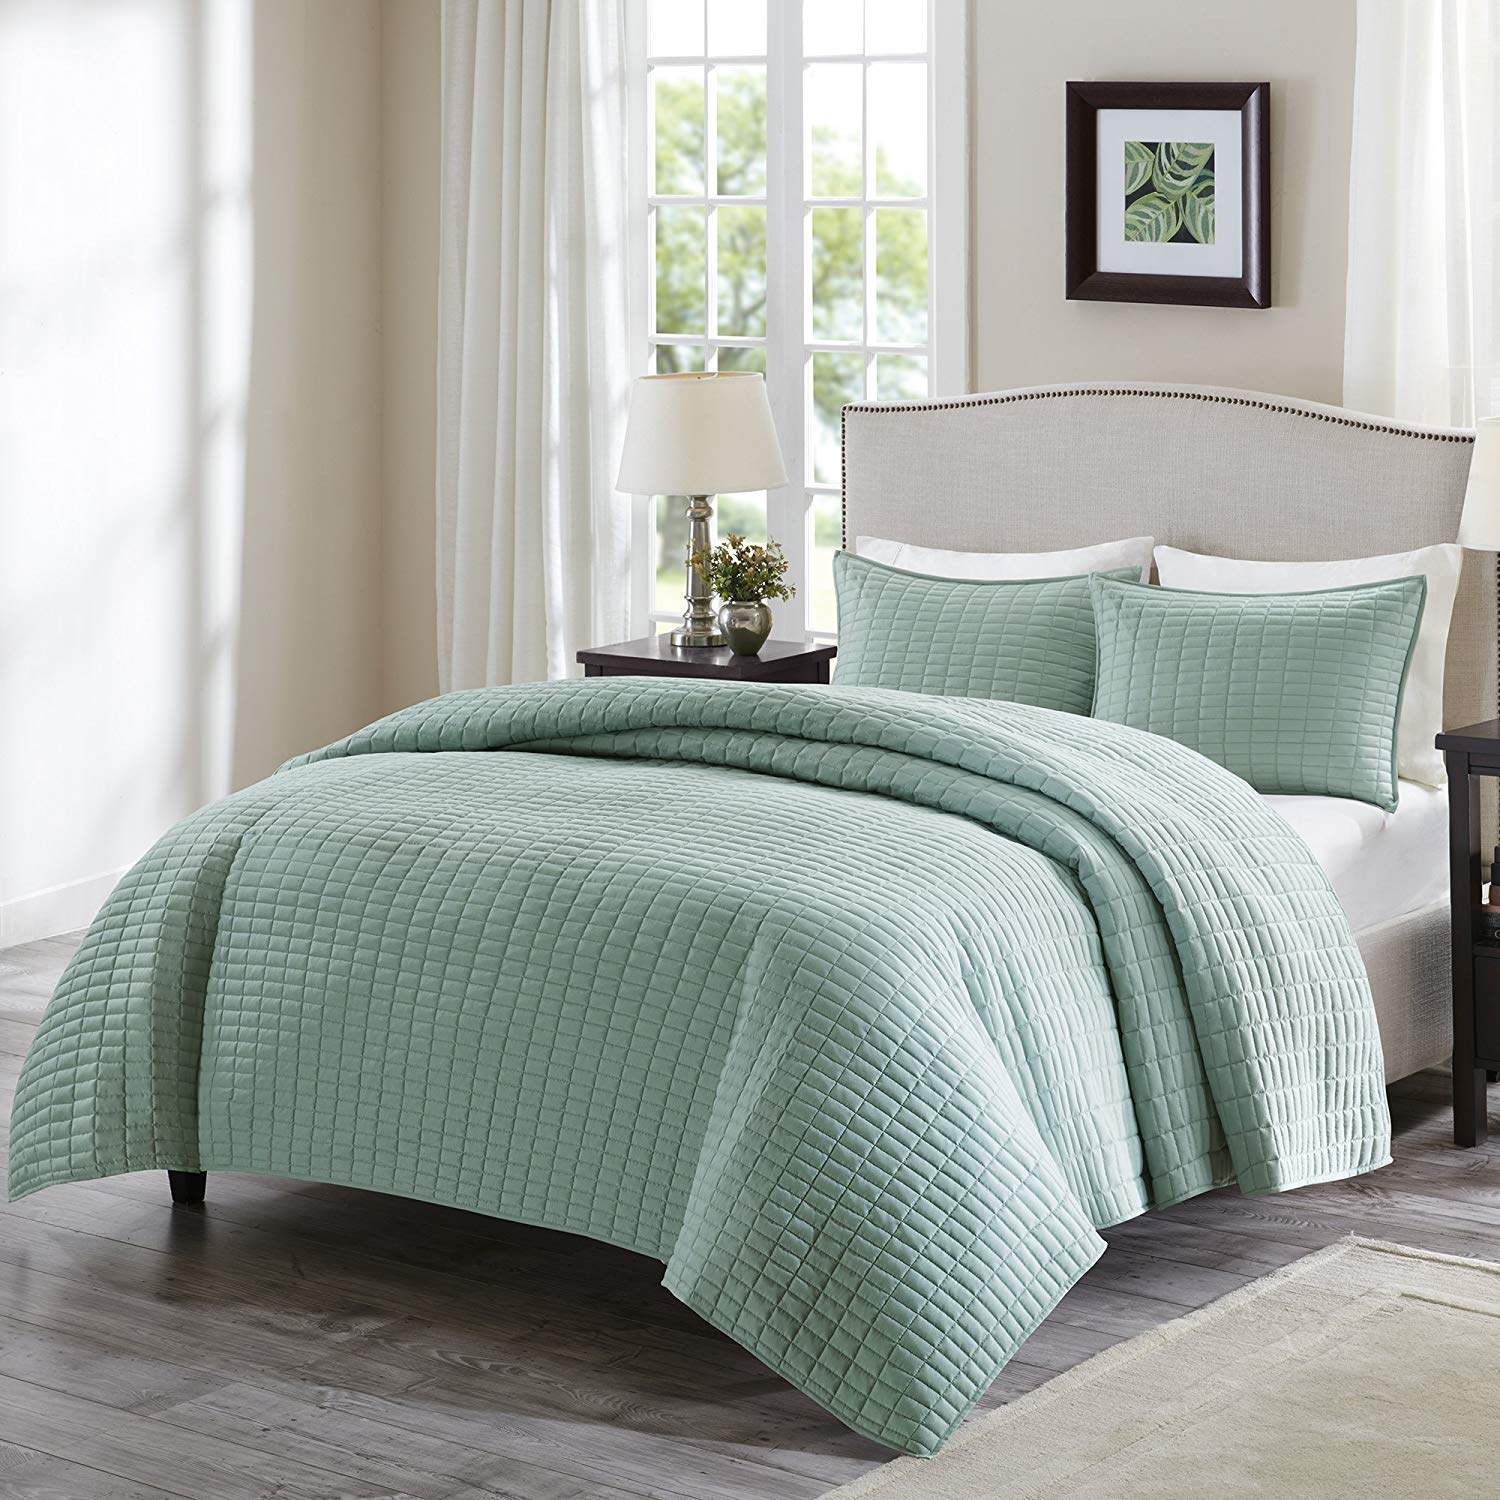 Comfort Spaces Kienna 3 Piece Quilt Coverlet Bedspread Ultra Soft Hypoallergenic Microfiber Stitched Bedding Set, Full/Queen, Seafoam